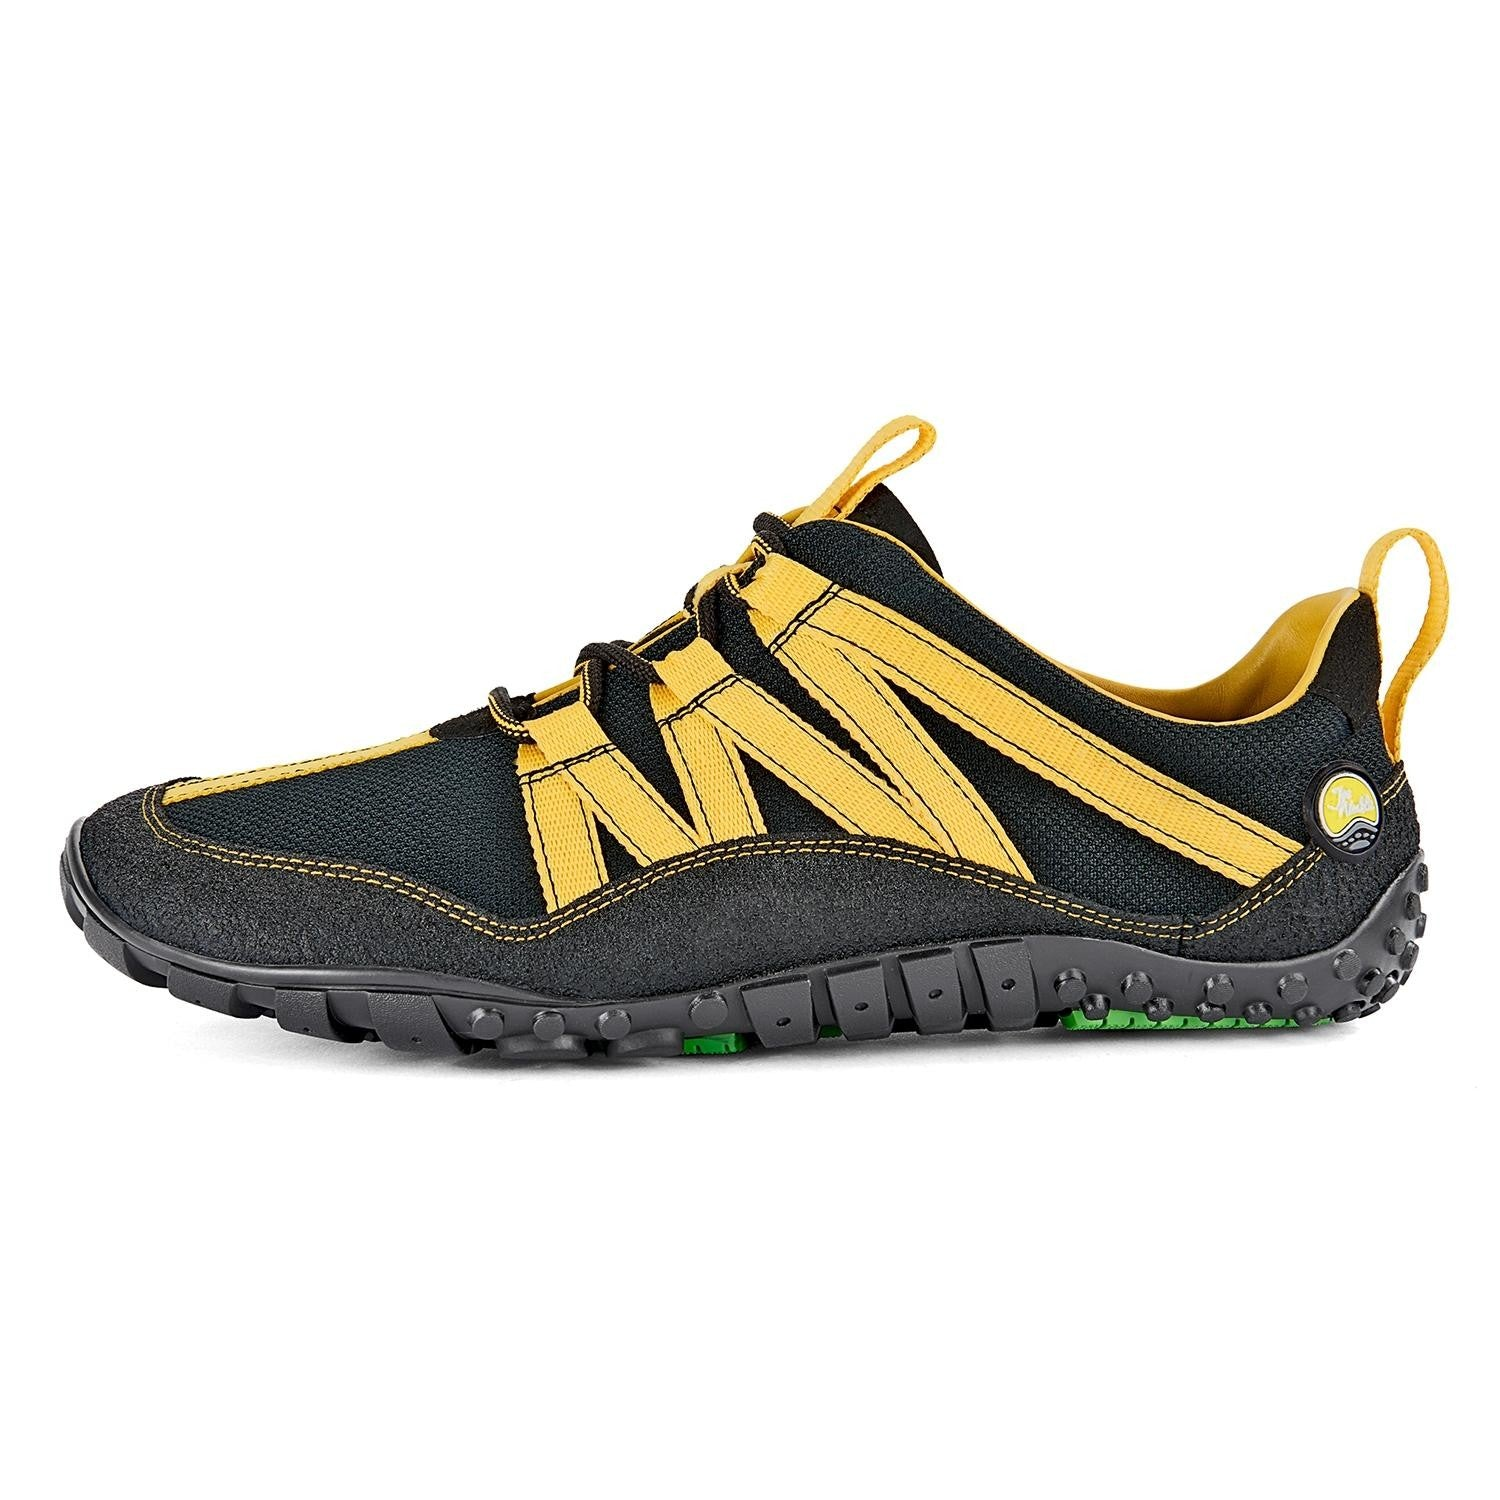 nimbleToes Trail p black/yellow